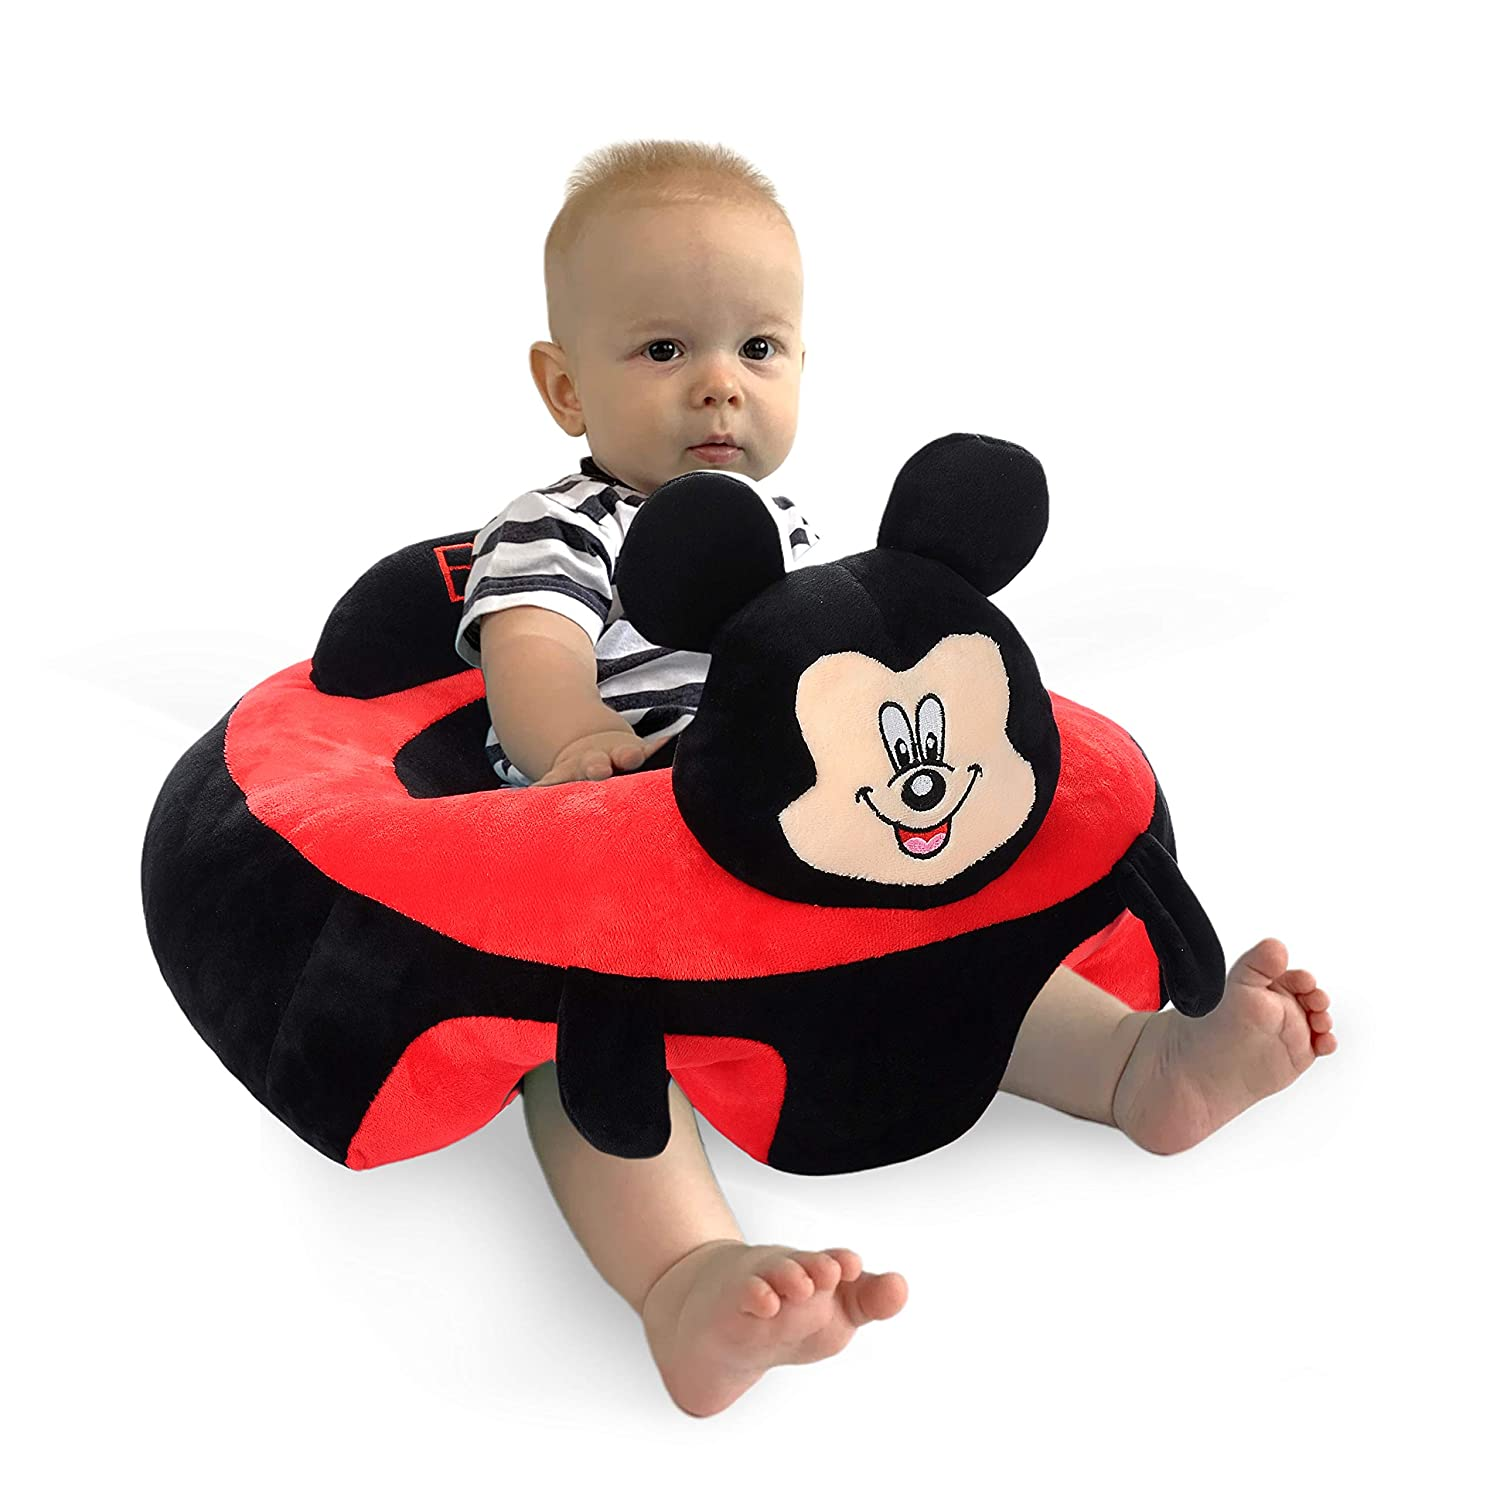 Baby Sofa Infant It is very popular Support Seat Babies Max 89% OFF Sitting Learning for Chairs